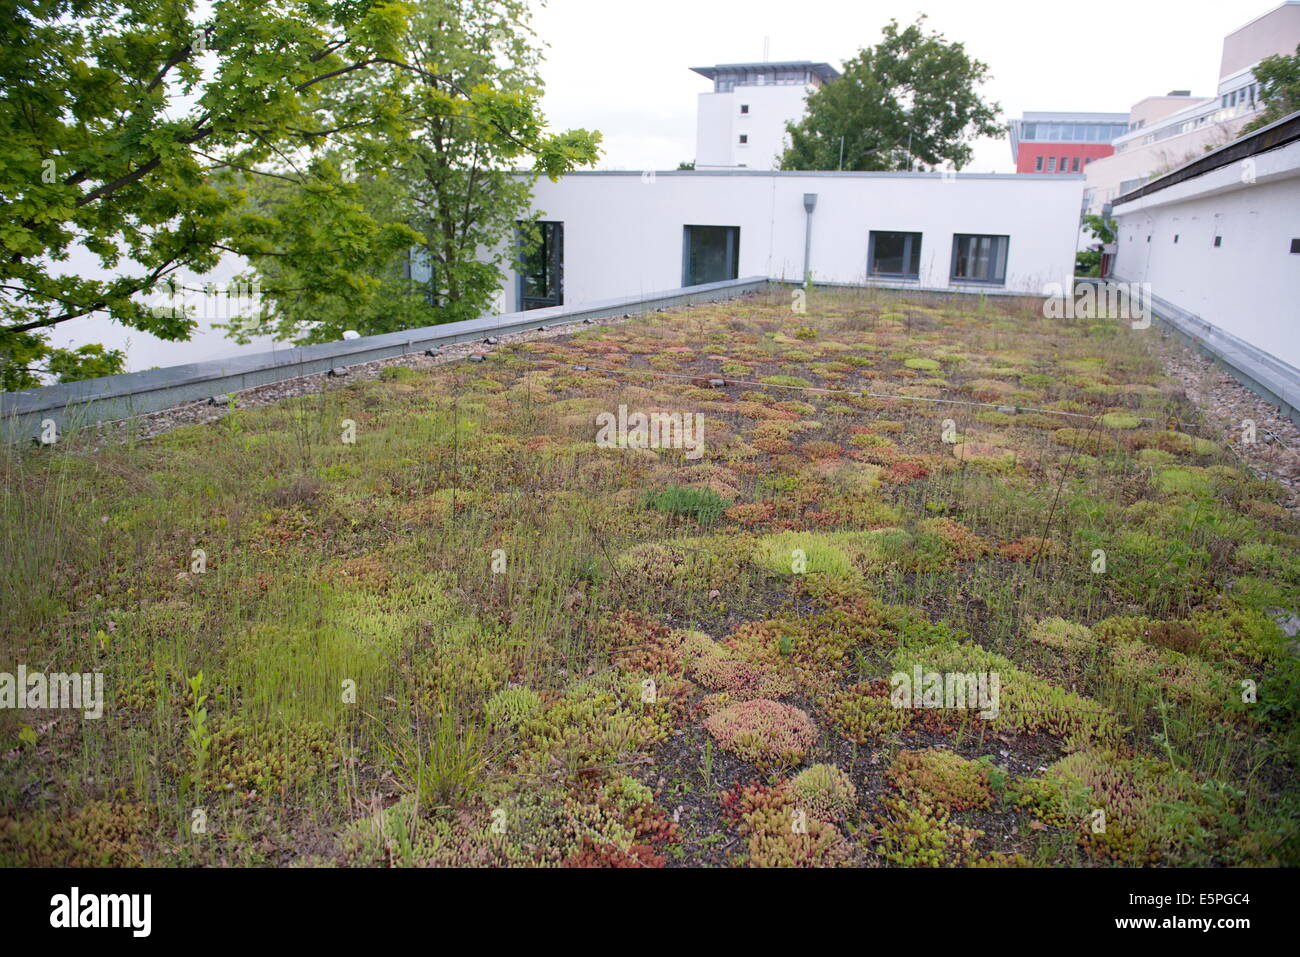 Typical extensive mixed Sedum species green roof, Berlin, Germany, Europe - Stock Image